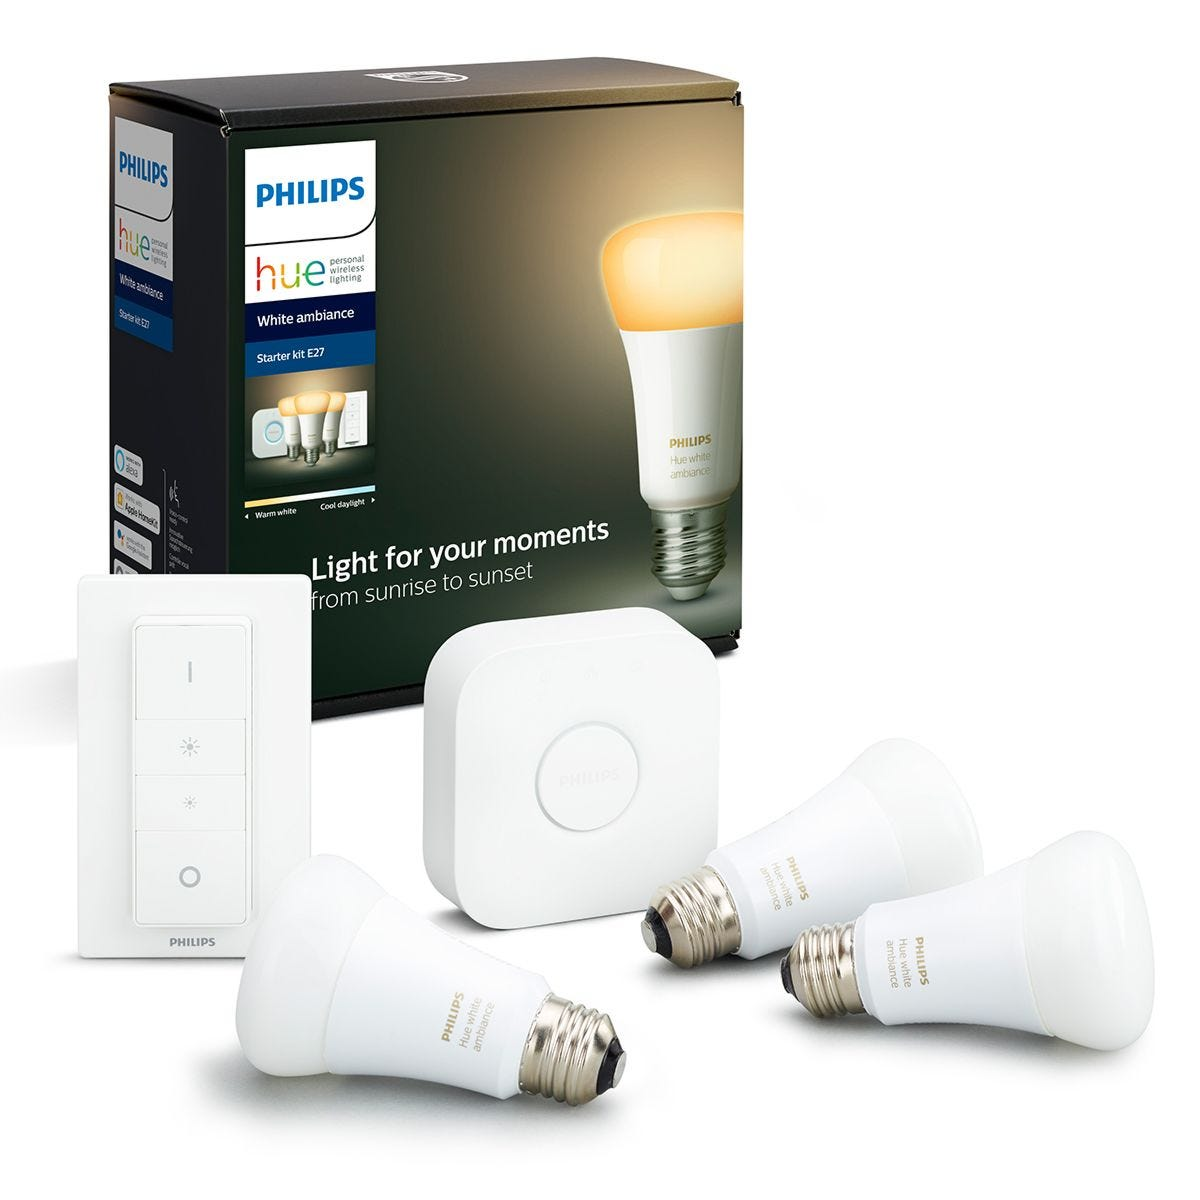 Philips Hue White Ambiance Starter Kit: Smart Bulb 3x Pack LED E27 incl. Dimmer Switch and Bridge